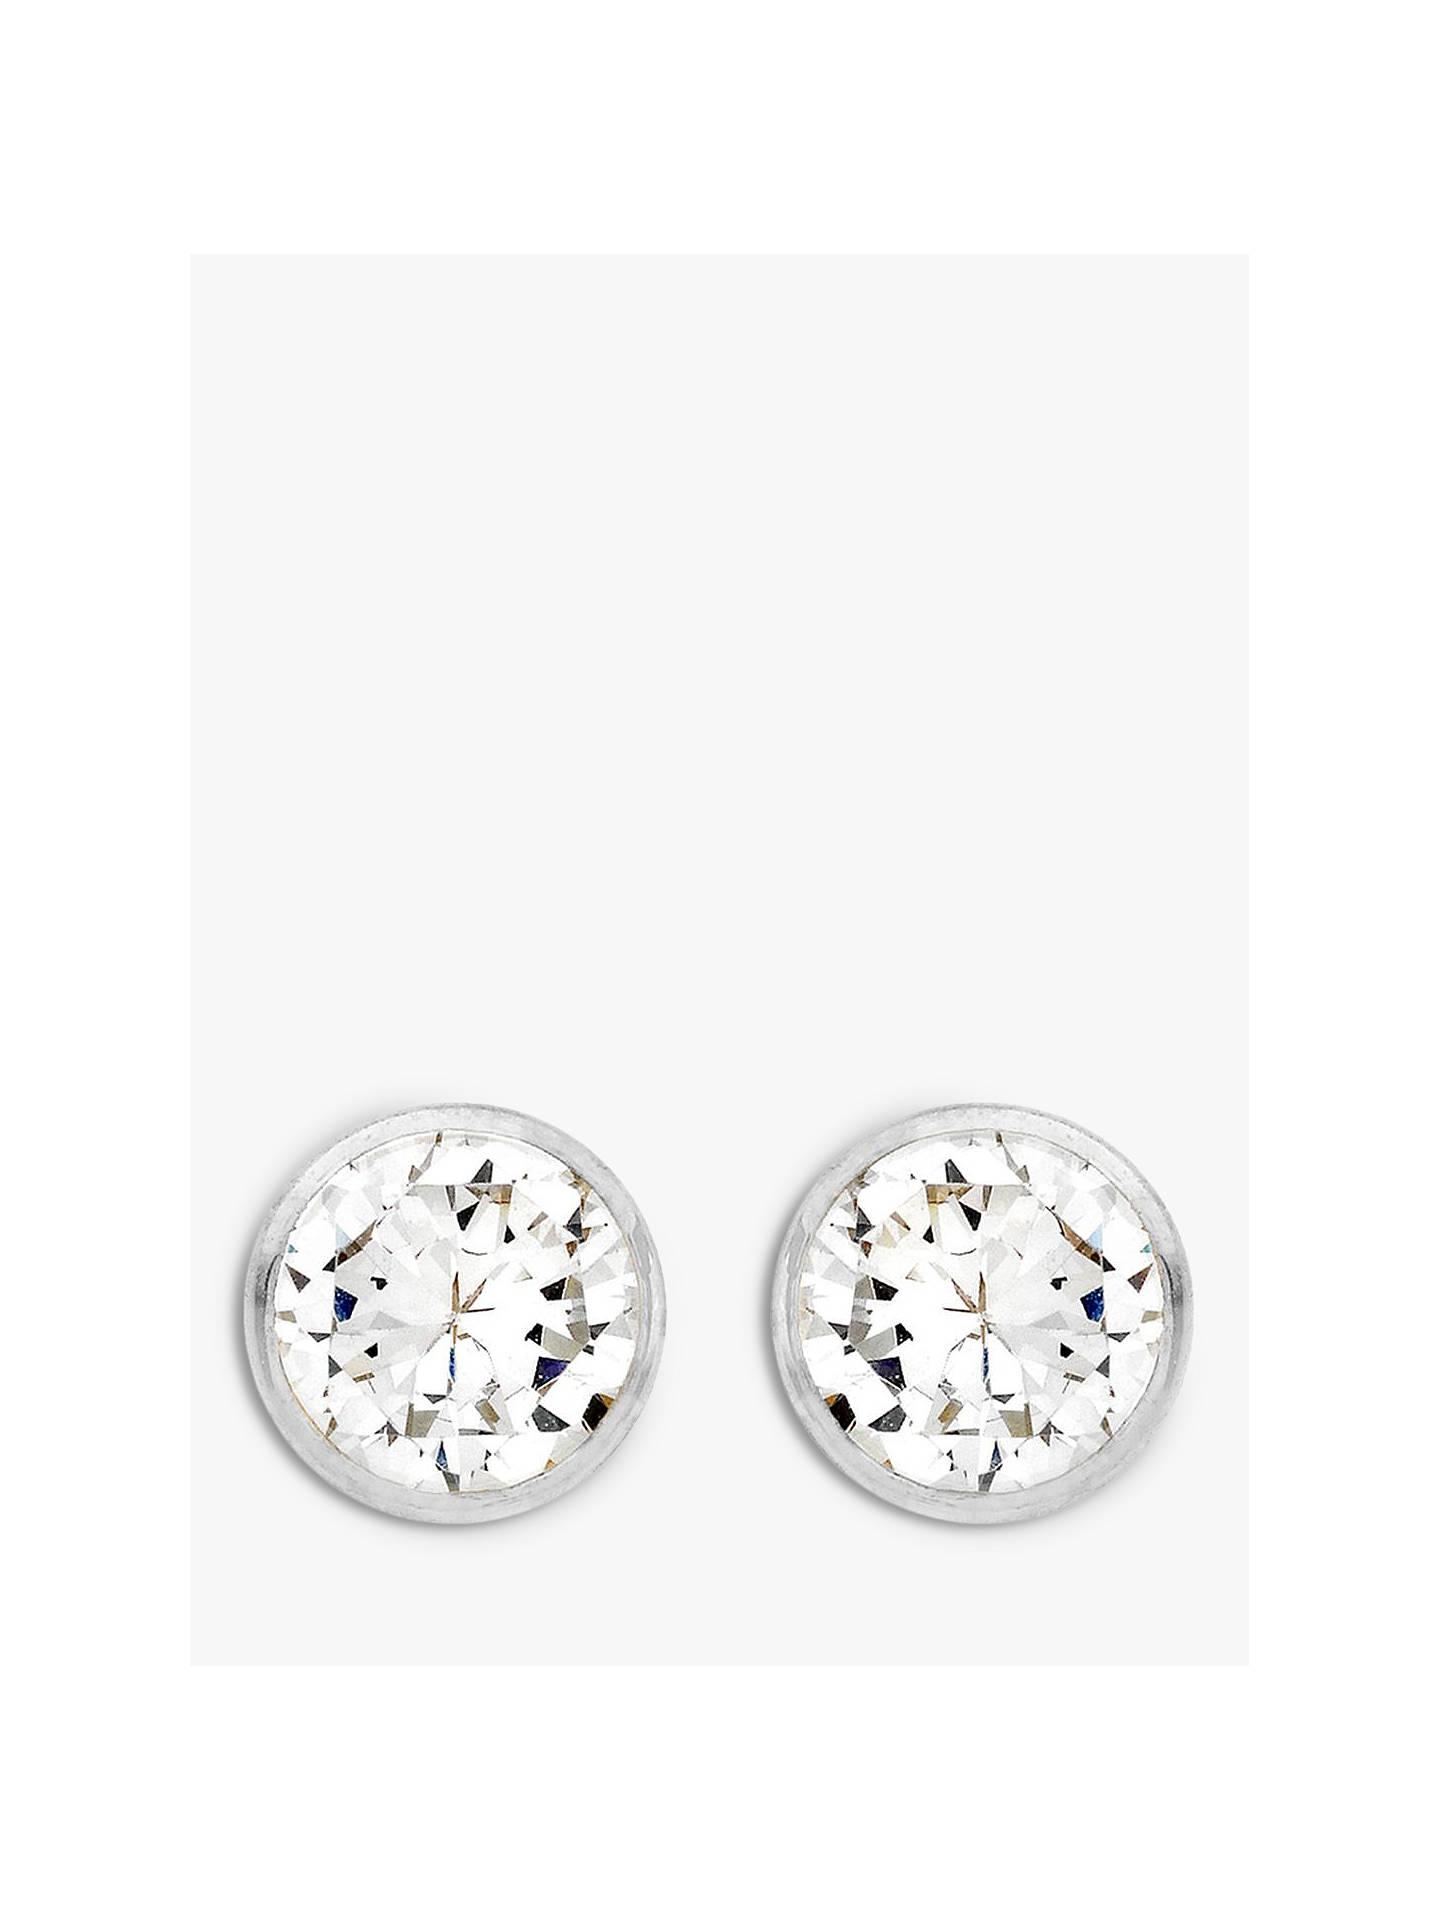 8674a2cde Buy IBB 9ct White Gold Round Cubic Zirconia Stud Earrings Online at  johnlewis.com ...